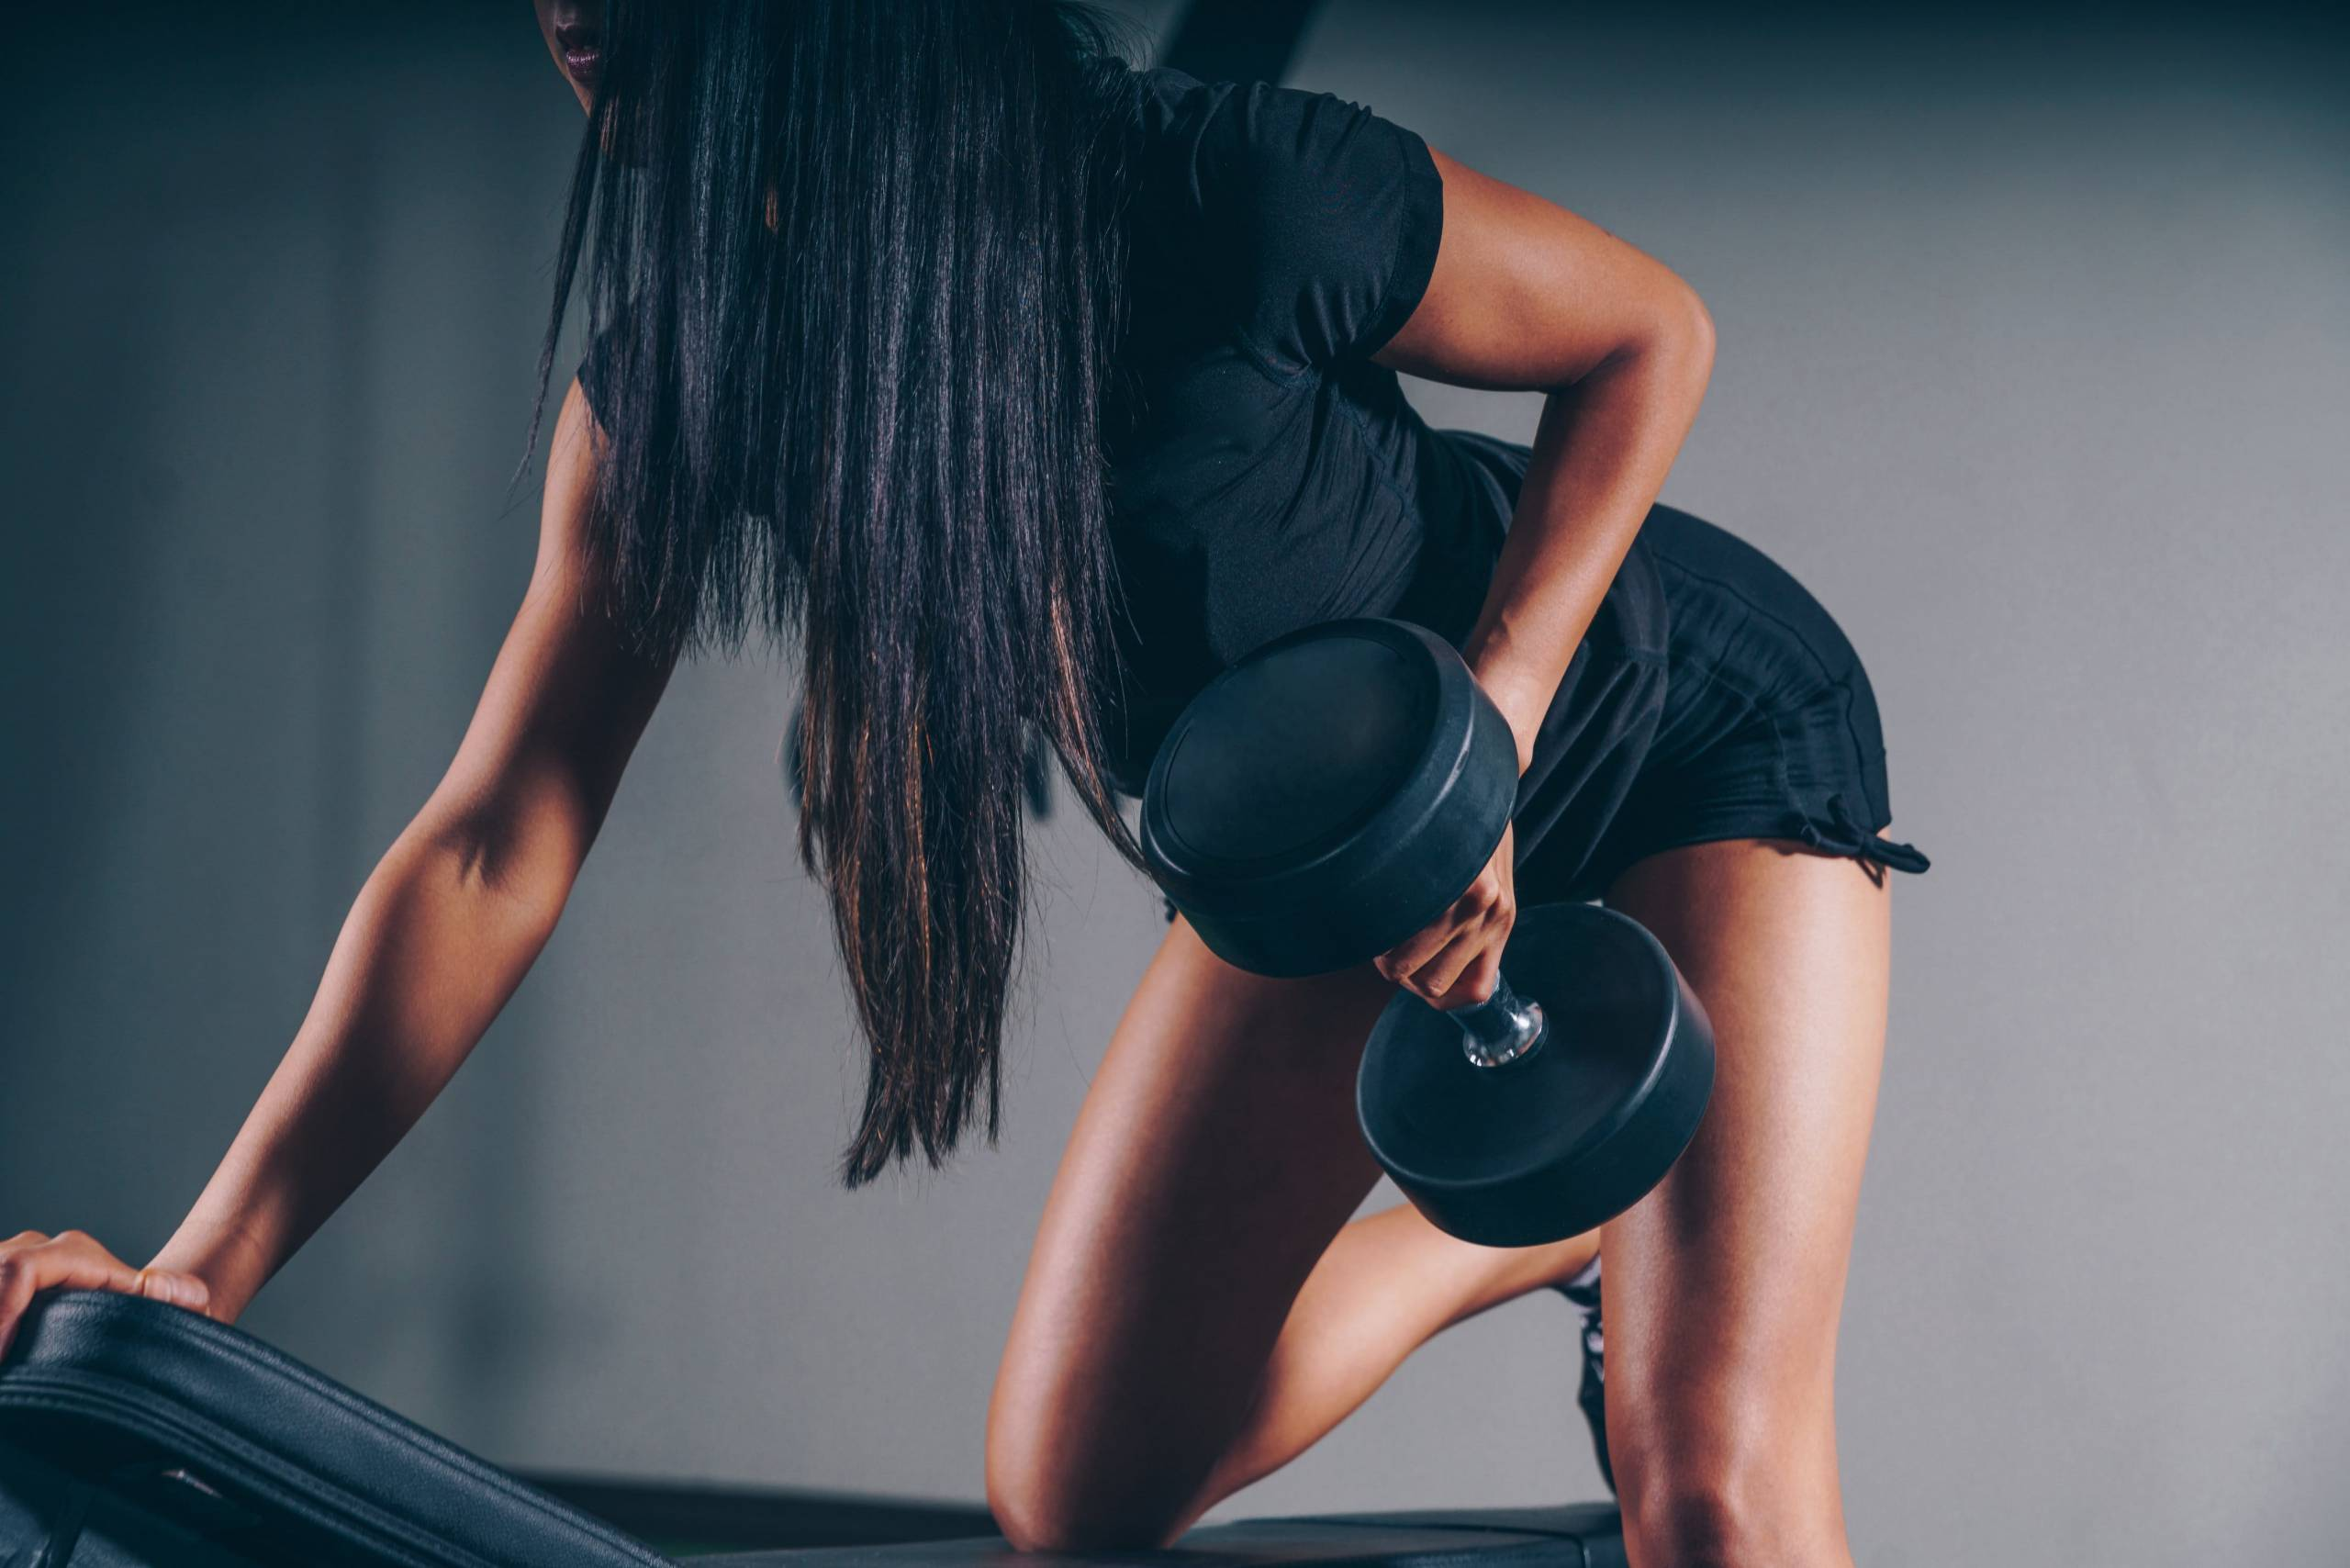 10 Fitness Finds To Help You Take Your Home Gym To The Next Level